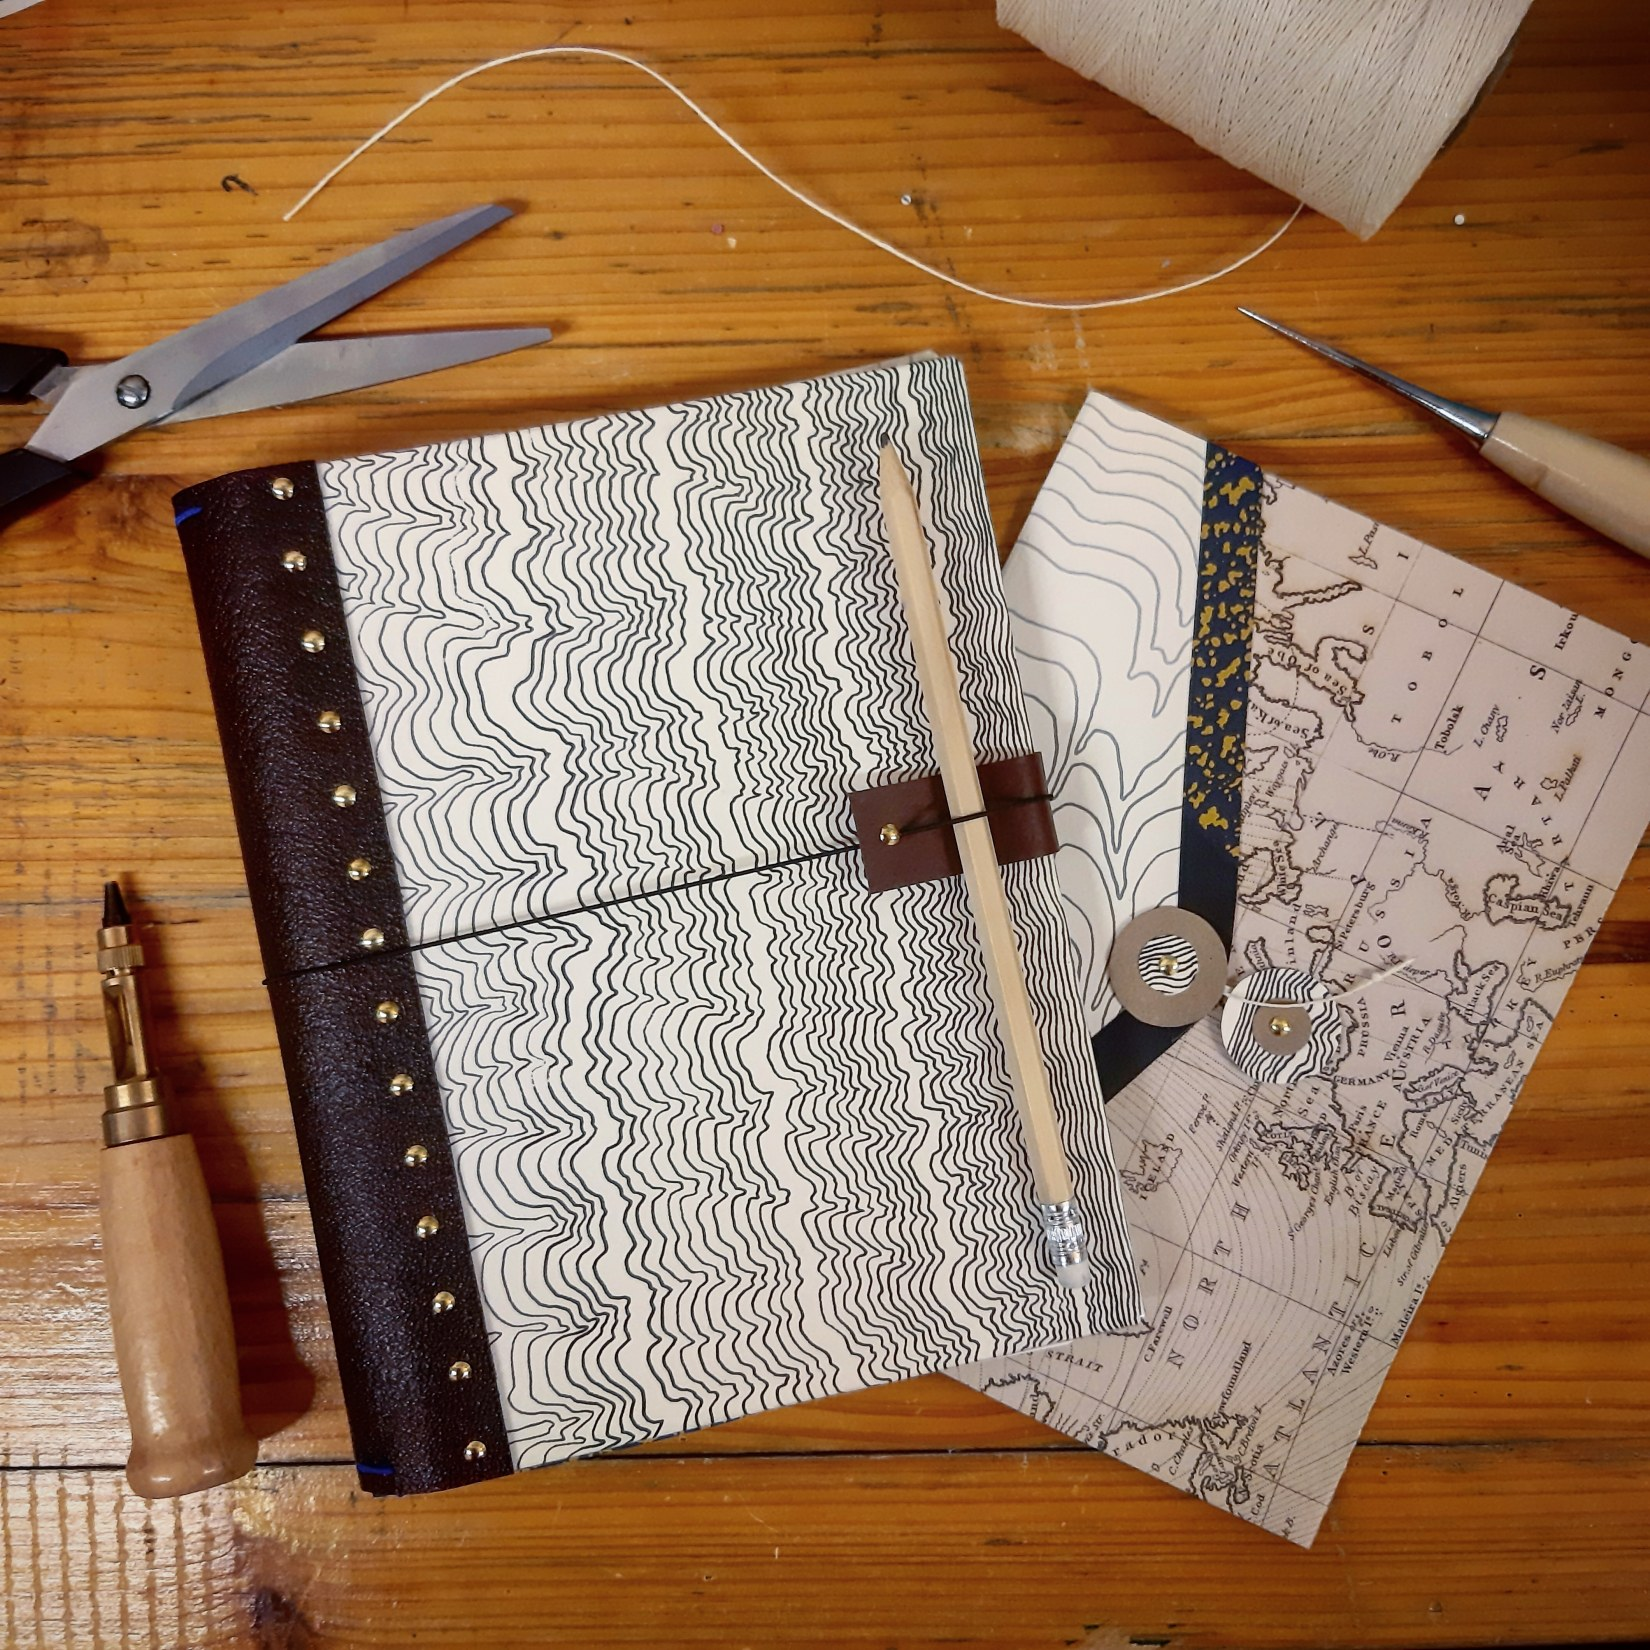 Two notebooks on a wooden table with thread, scissors and other bookbinding materials